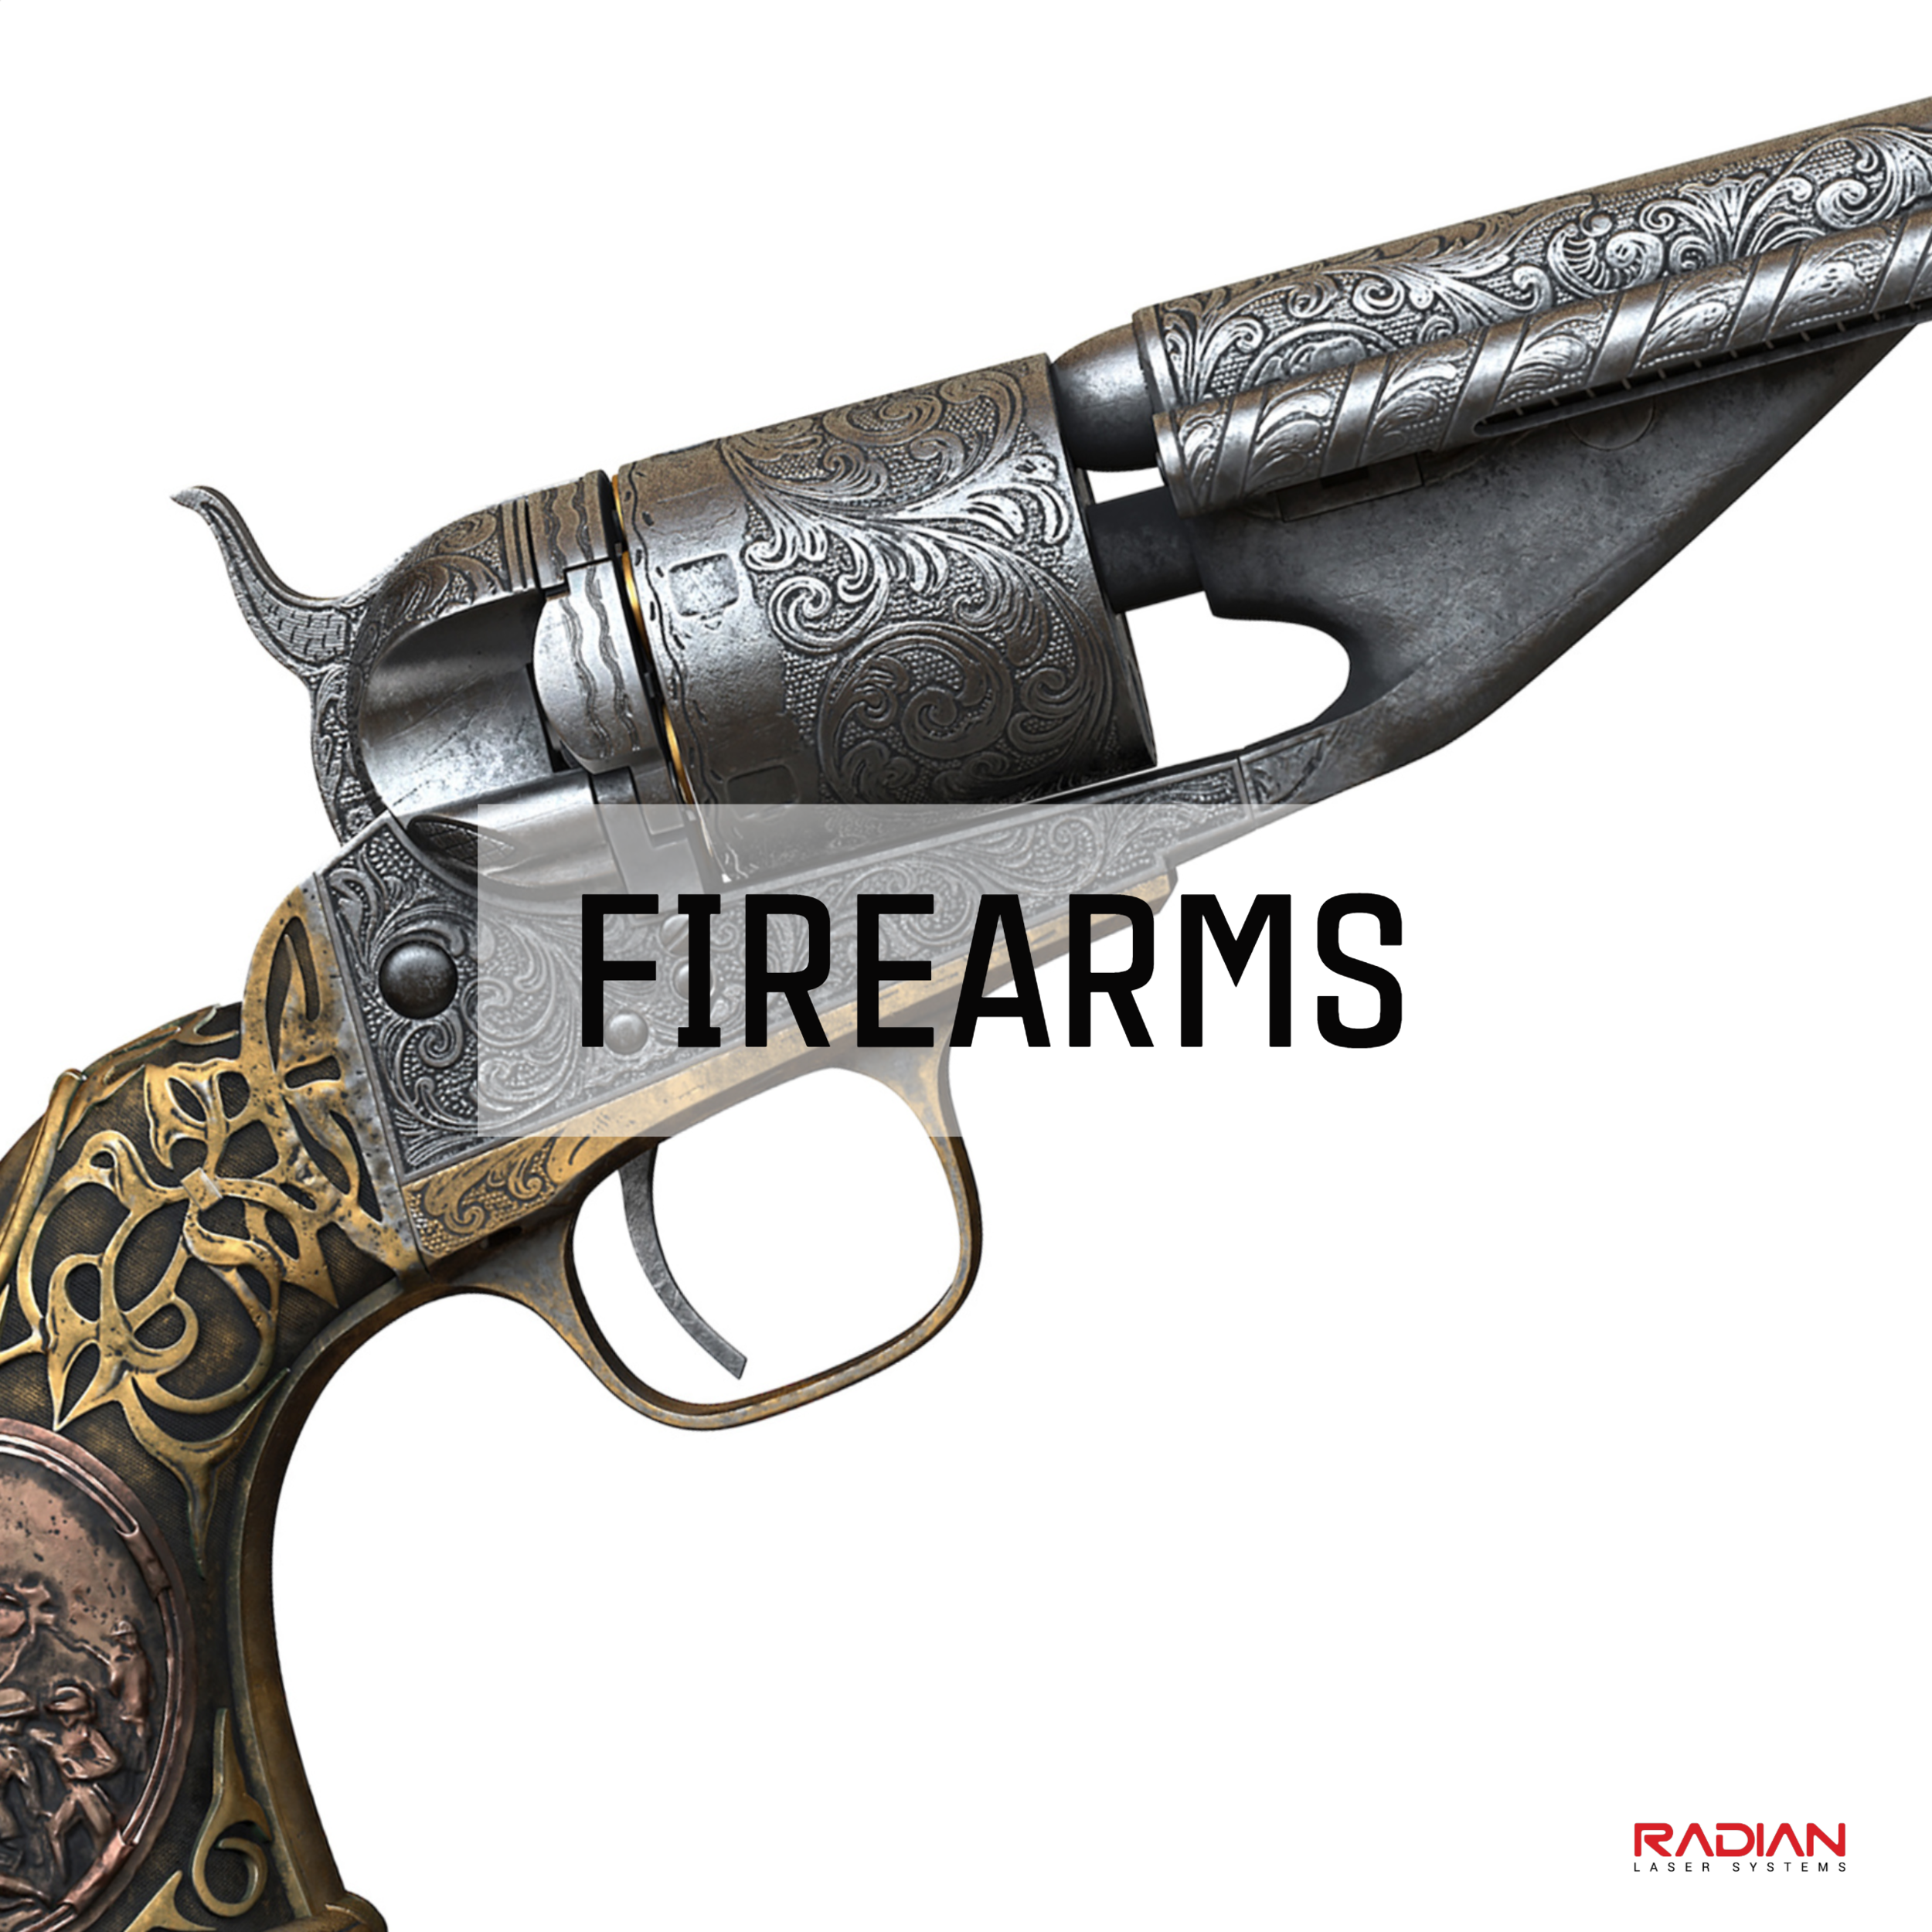 Engraving Firearms with a Laser